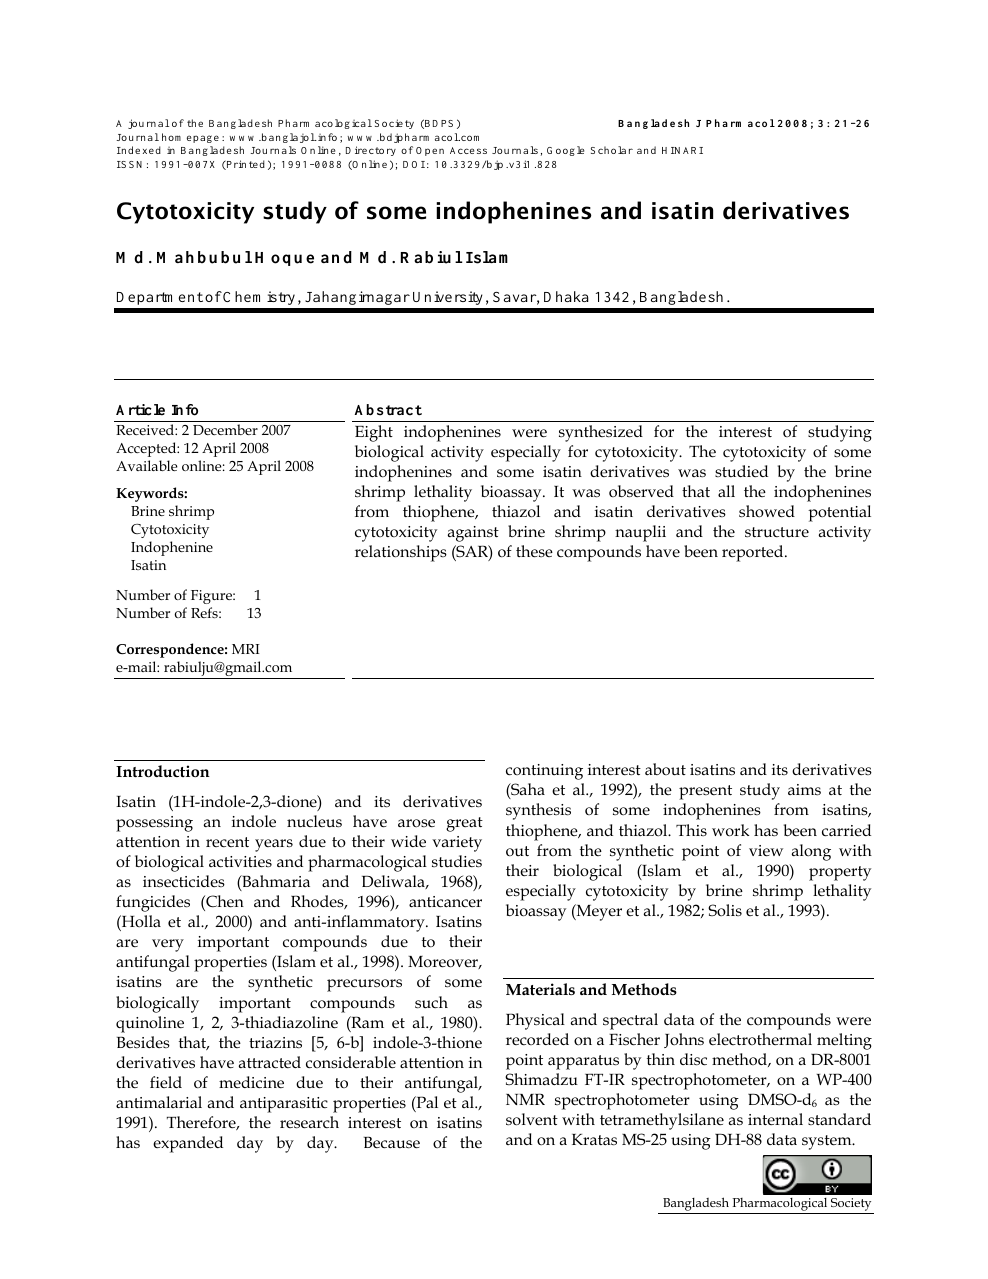 Cytotoxicity Study Of Some Indophenines And Isatin Derivatives